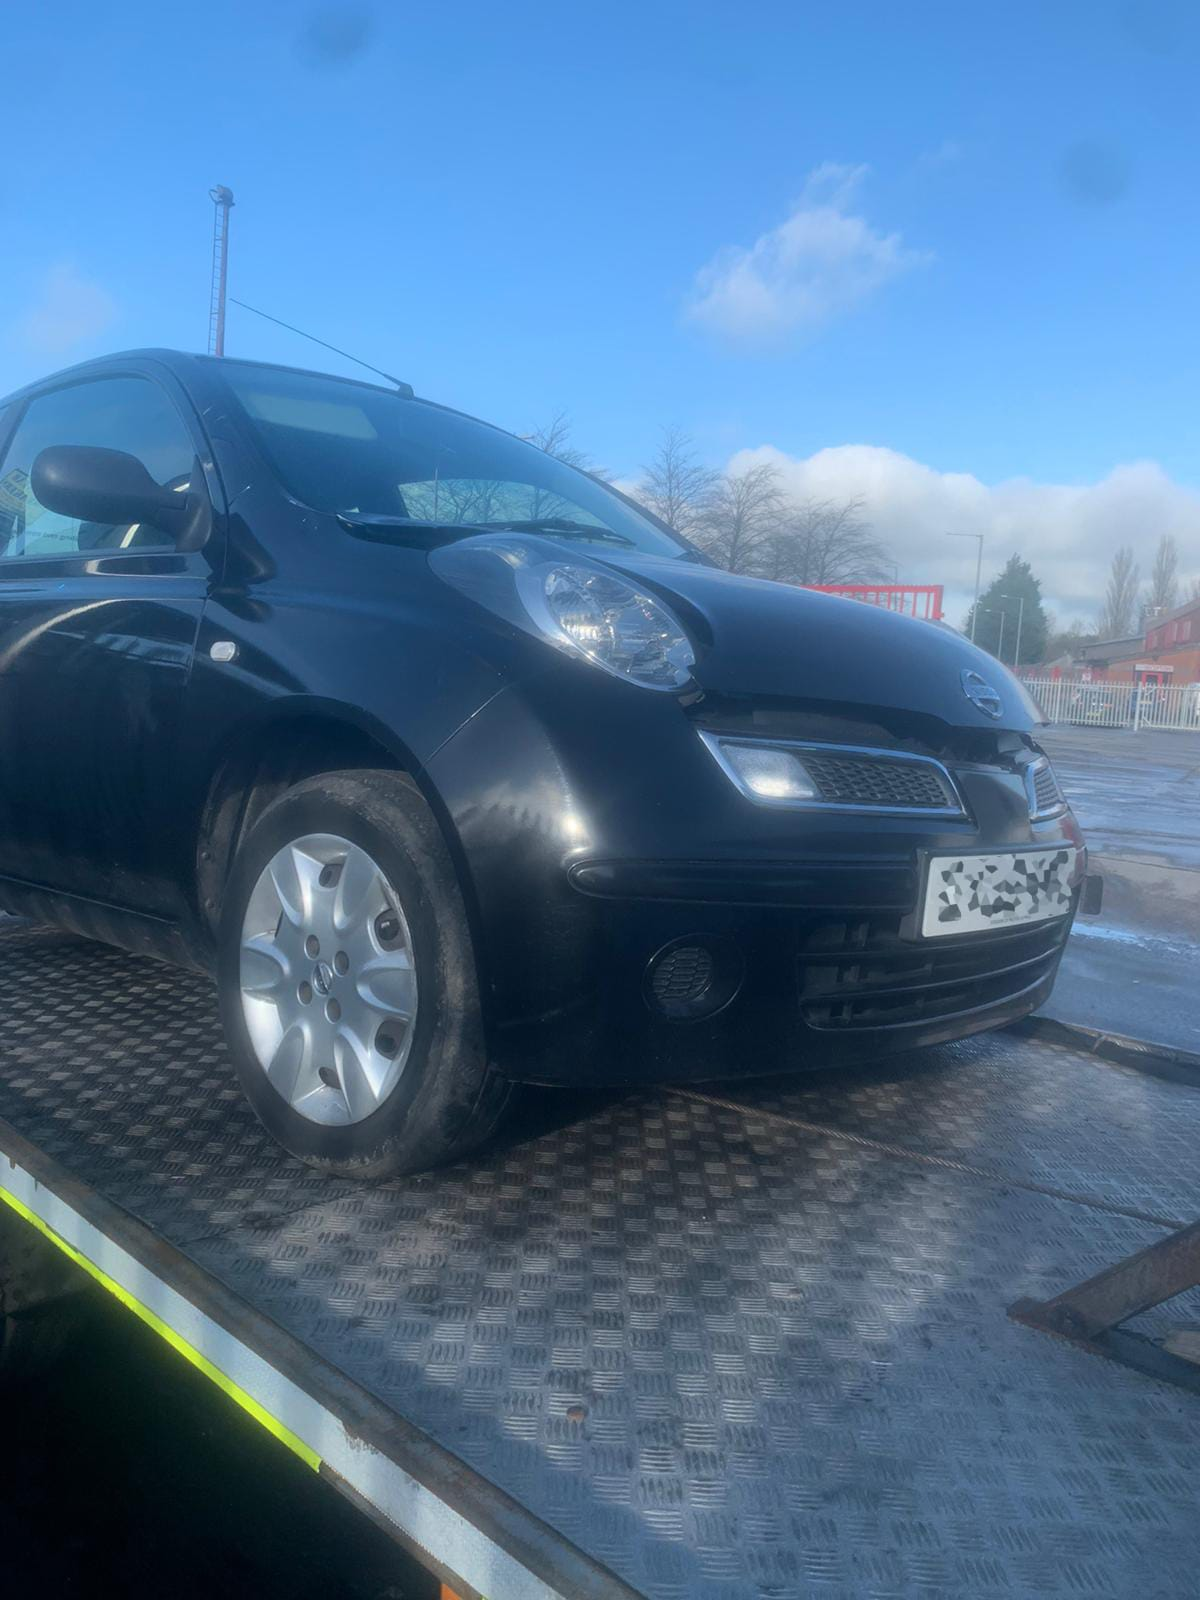 Nissan Micra scrap delivery from Darwen